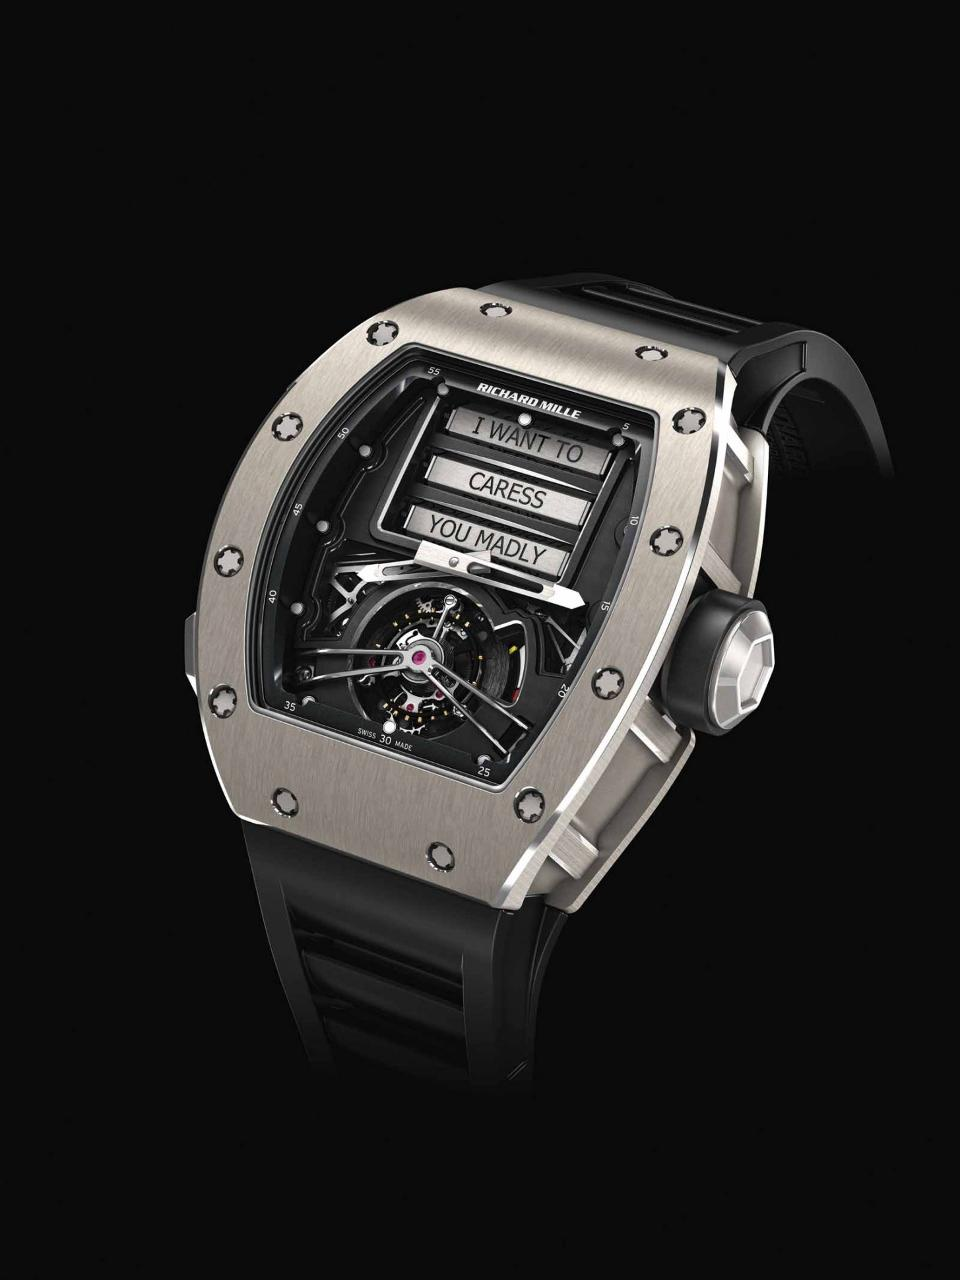 Richard Mille RM 69 Erotic Tourbillon features turning barrels with phrases on them.